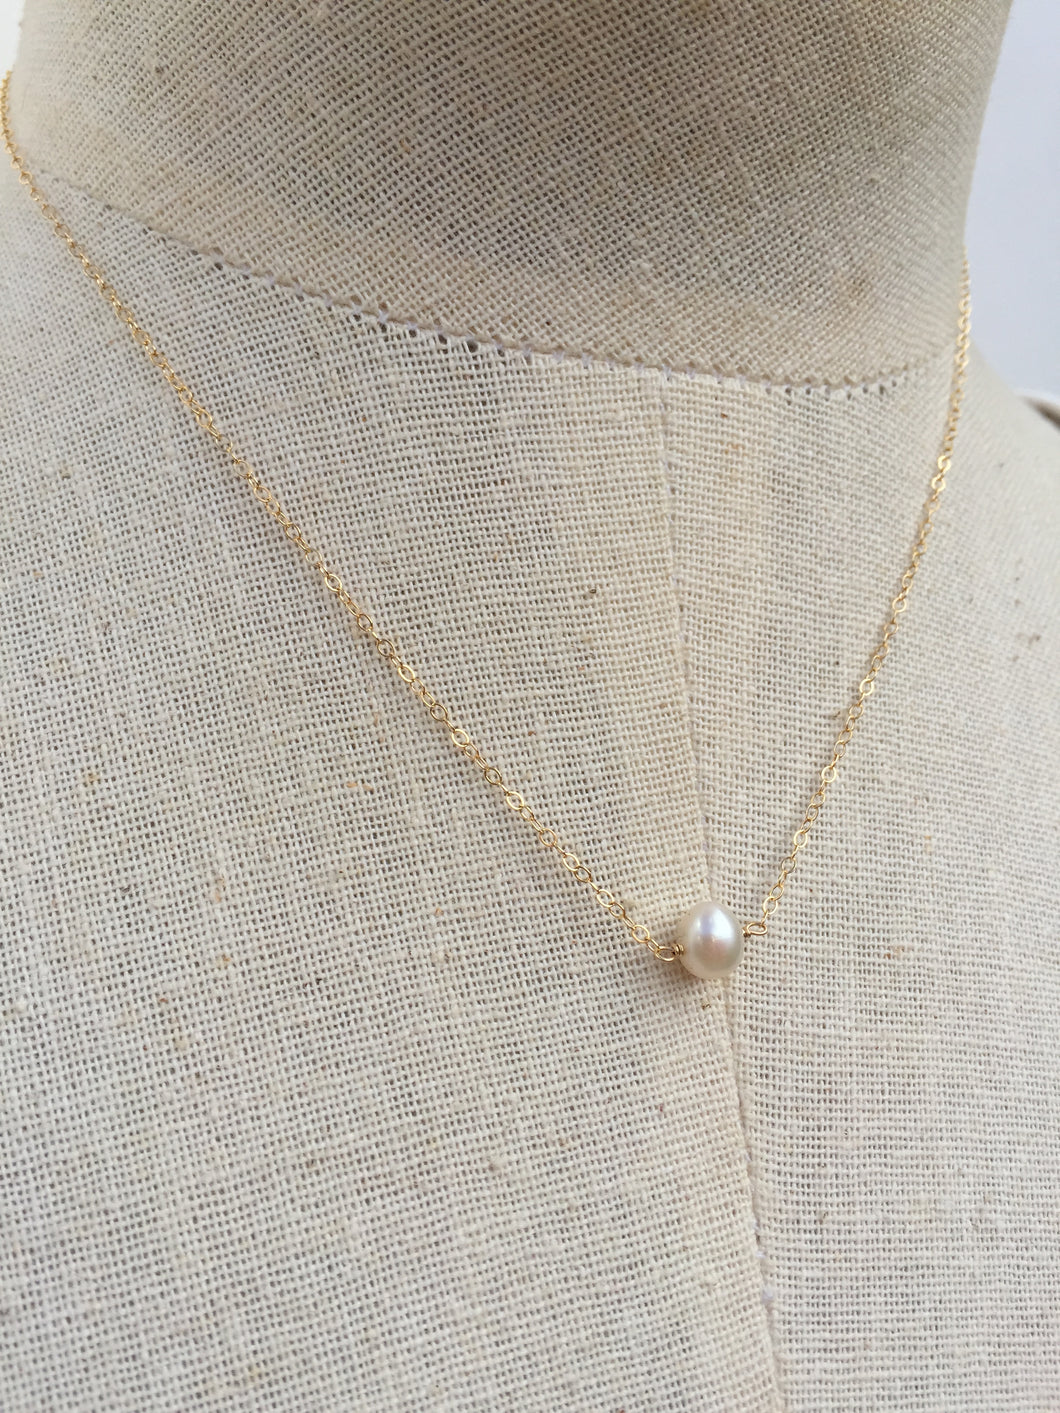 Single Pearl Necklace gold chain